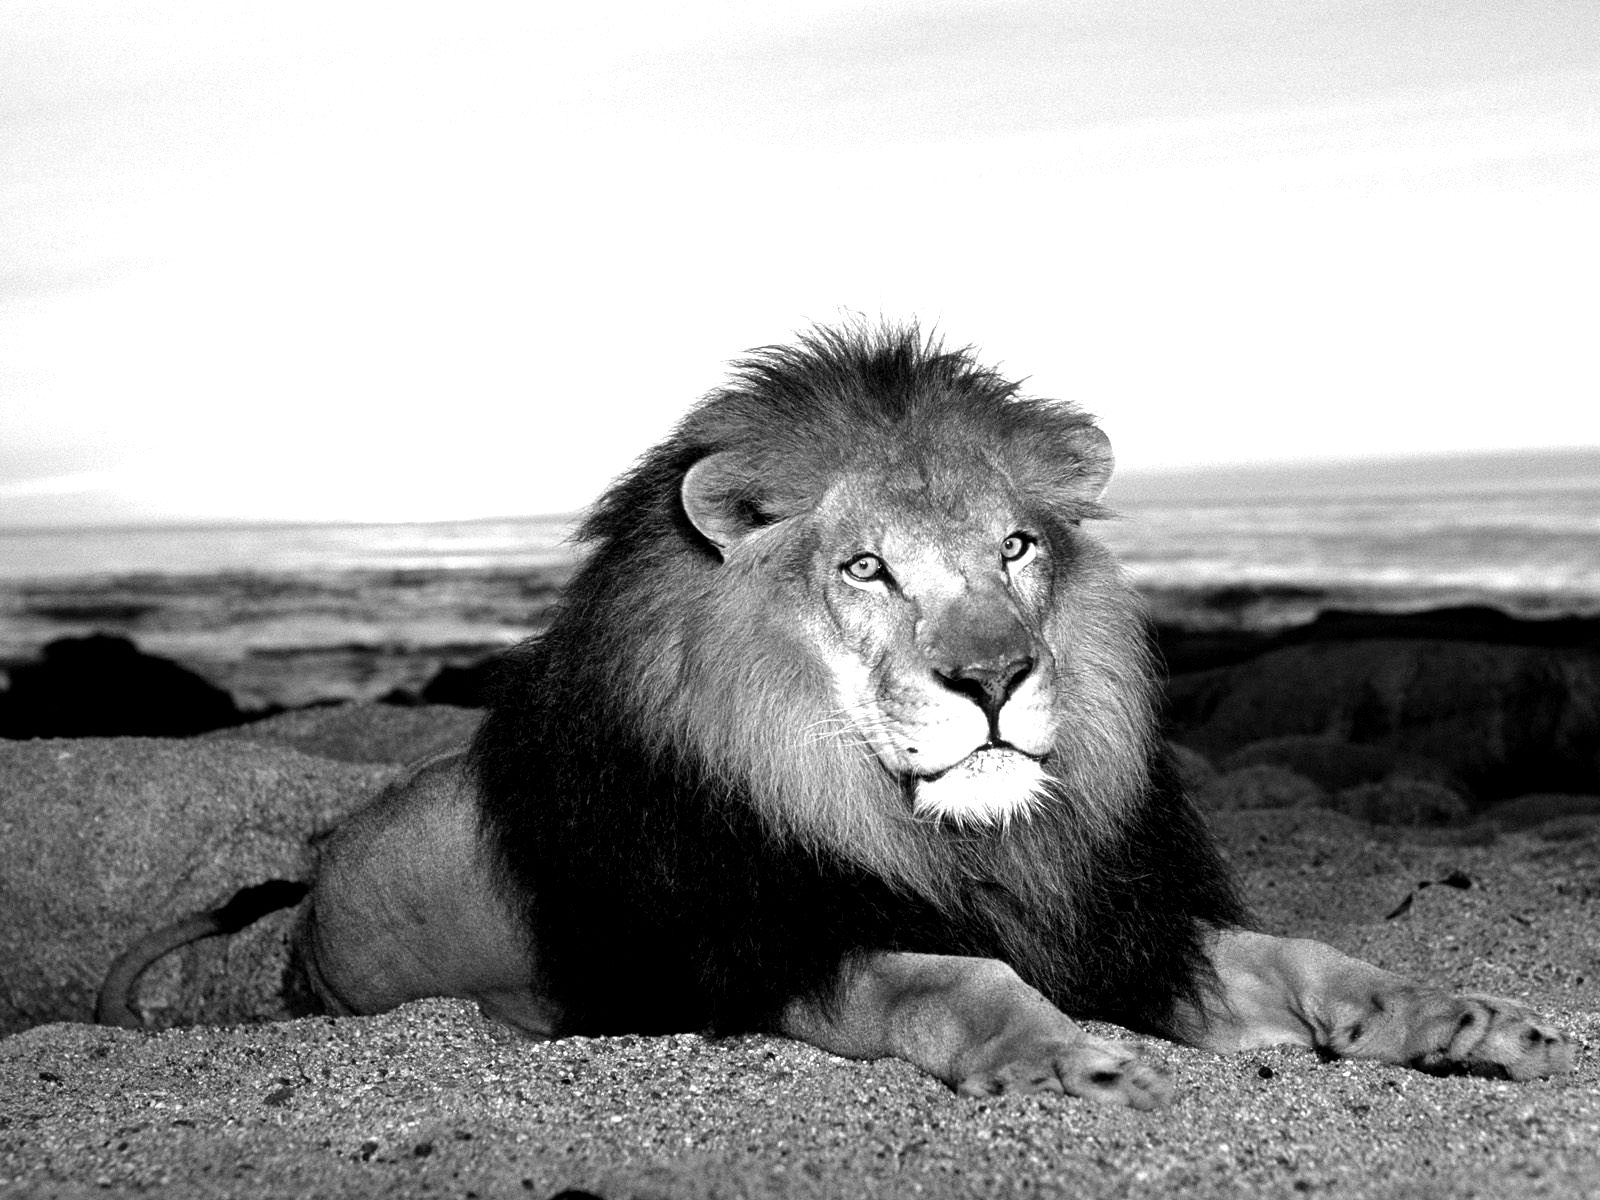 Free Download Jungle King Lion Black And White Wallpapers